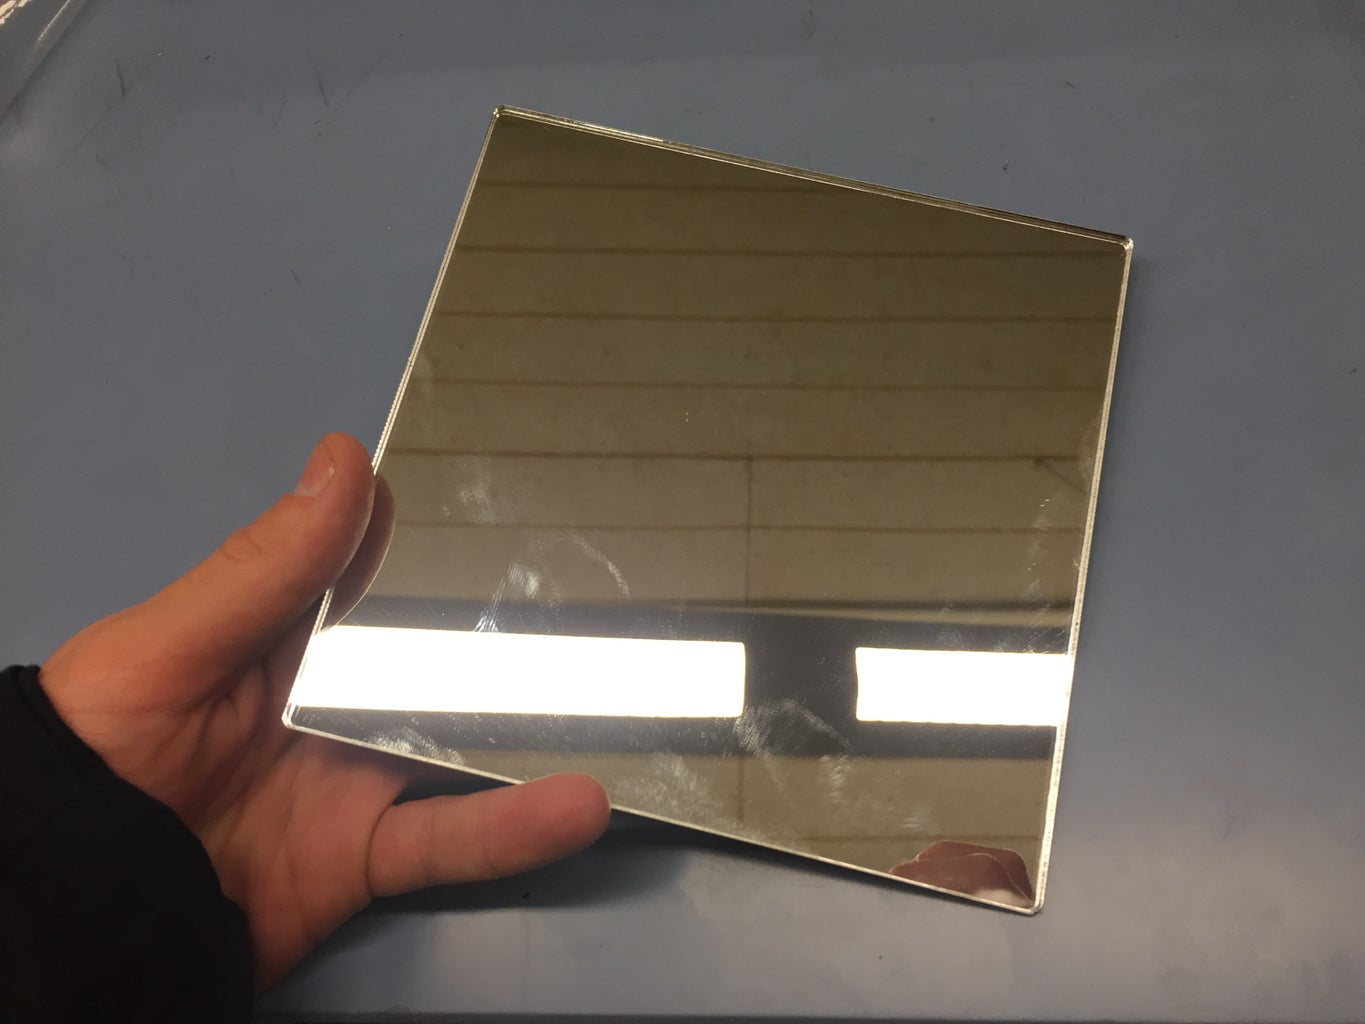 Glue/Duct Tape the Glass Where It Works Best for You